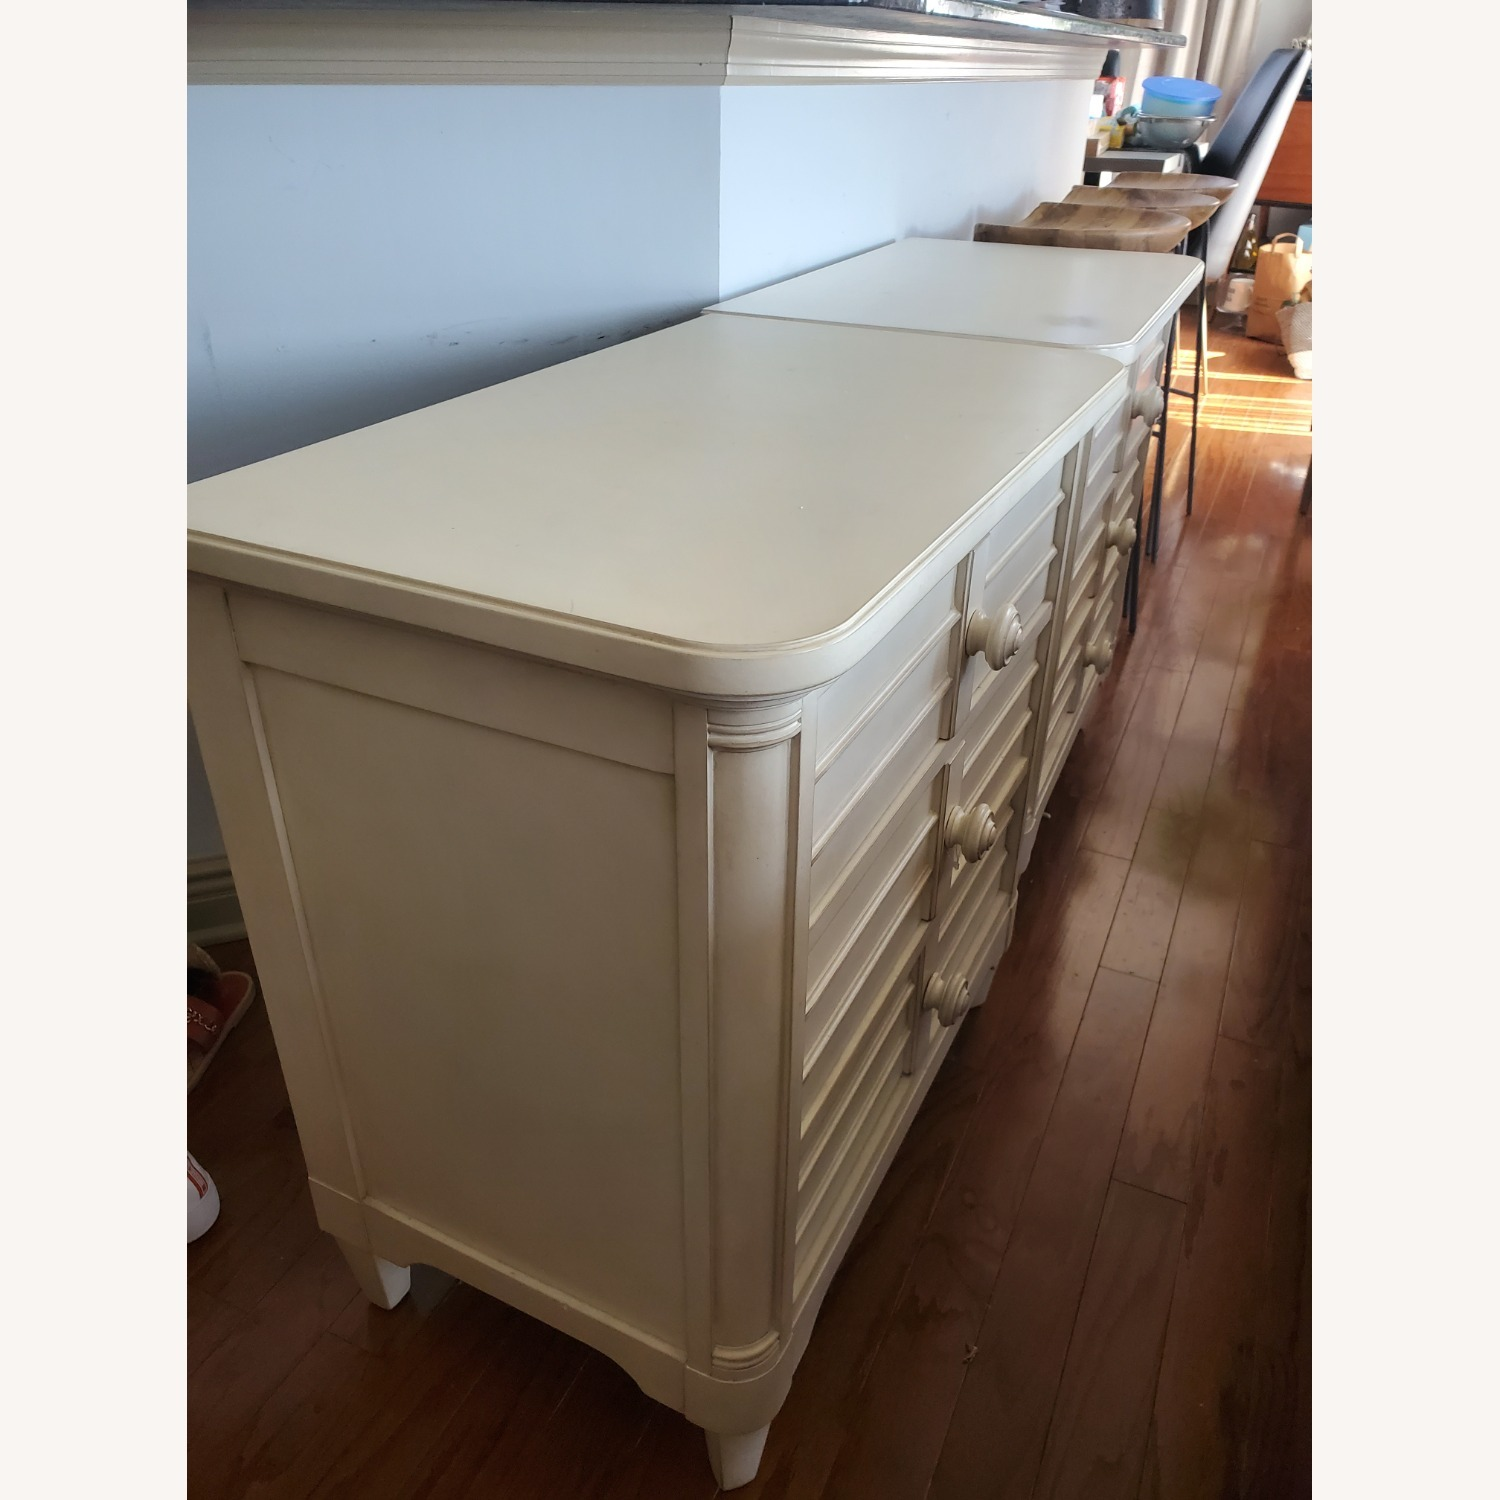 Stanley Sommerset Ivory 3 Drawer Nightstands - image-1